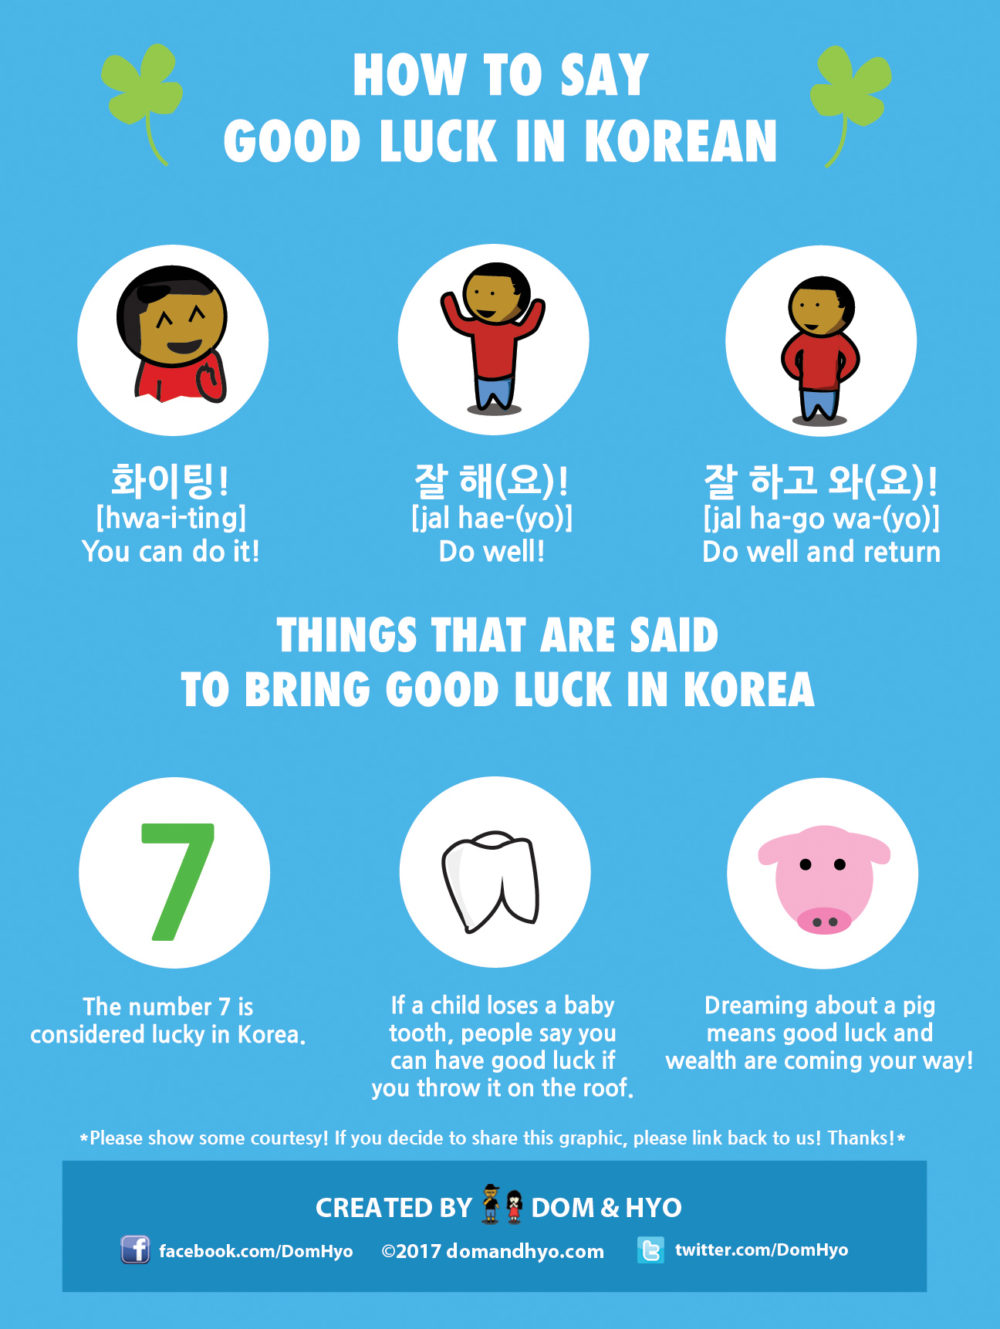 How to Say Good Luck in Korean